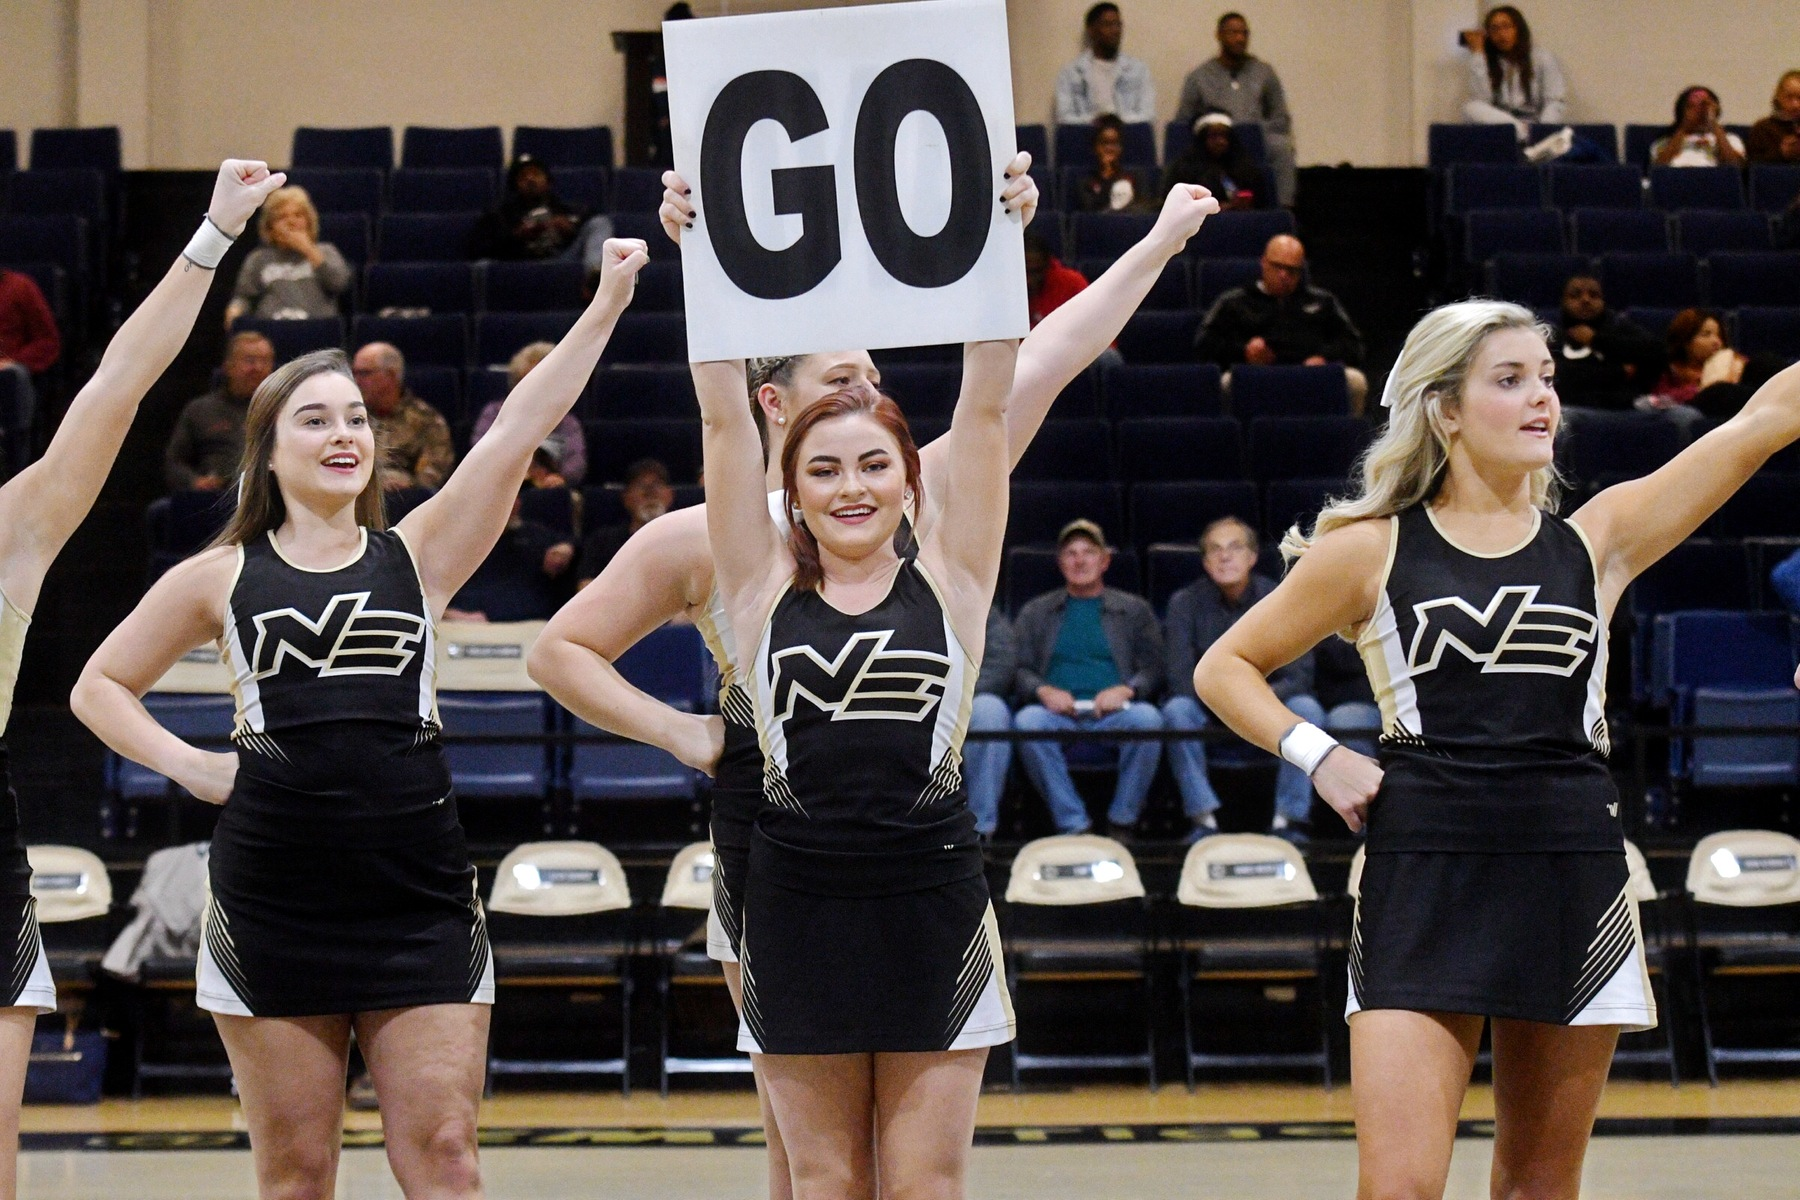 (PHOTO: Michael H. Miller/Northeast Public Information)